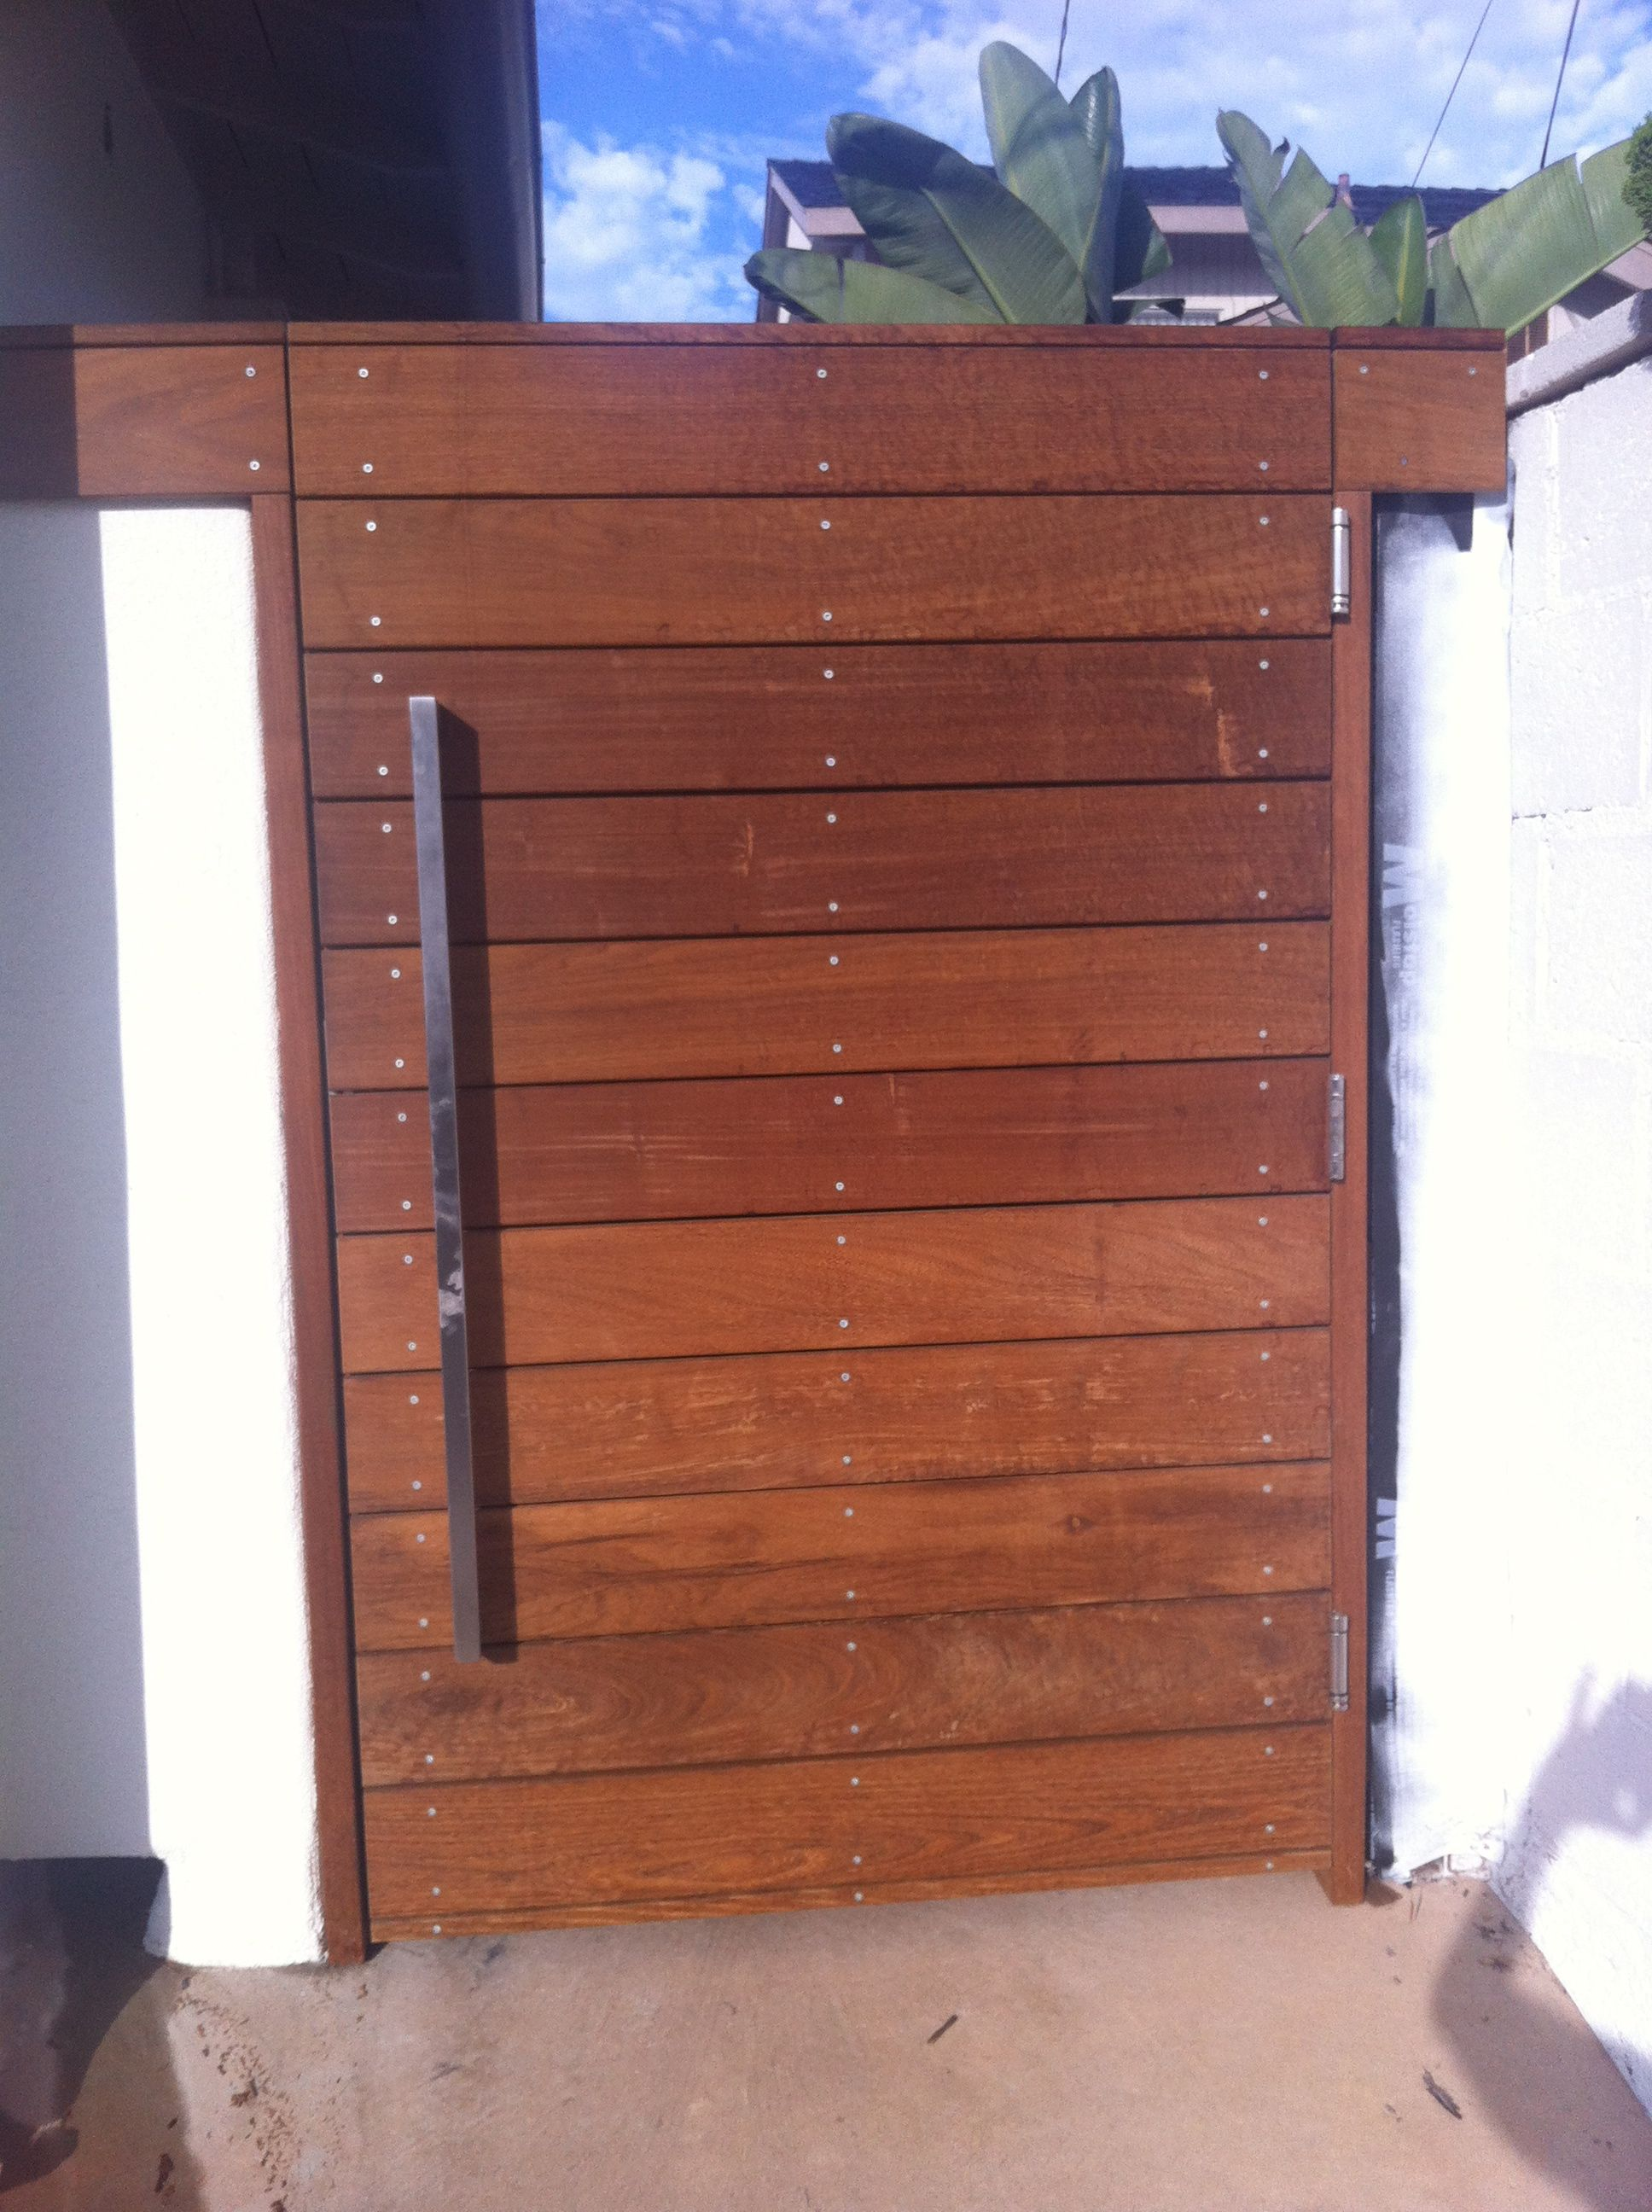 side gate option - horizontal slats with thing vertical metal handle